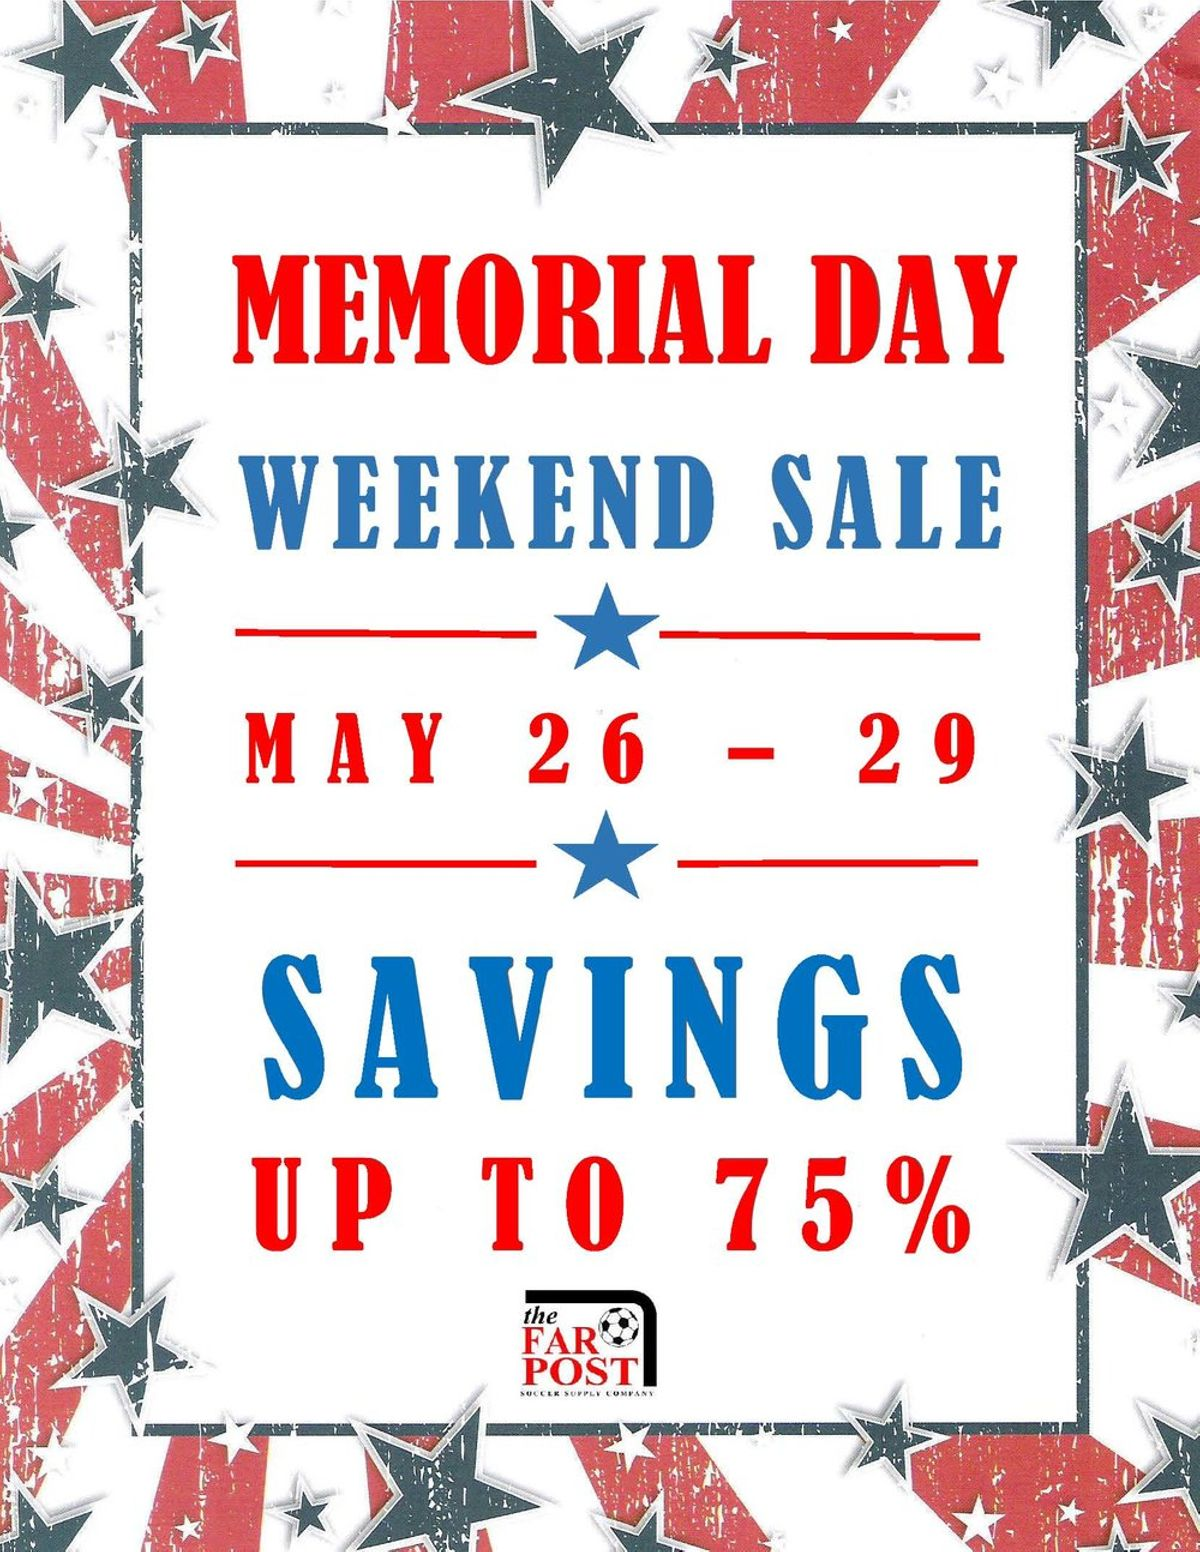 Far Post Soccer Supply Posted Memorial Day Weekend Sale